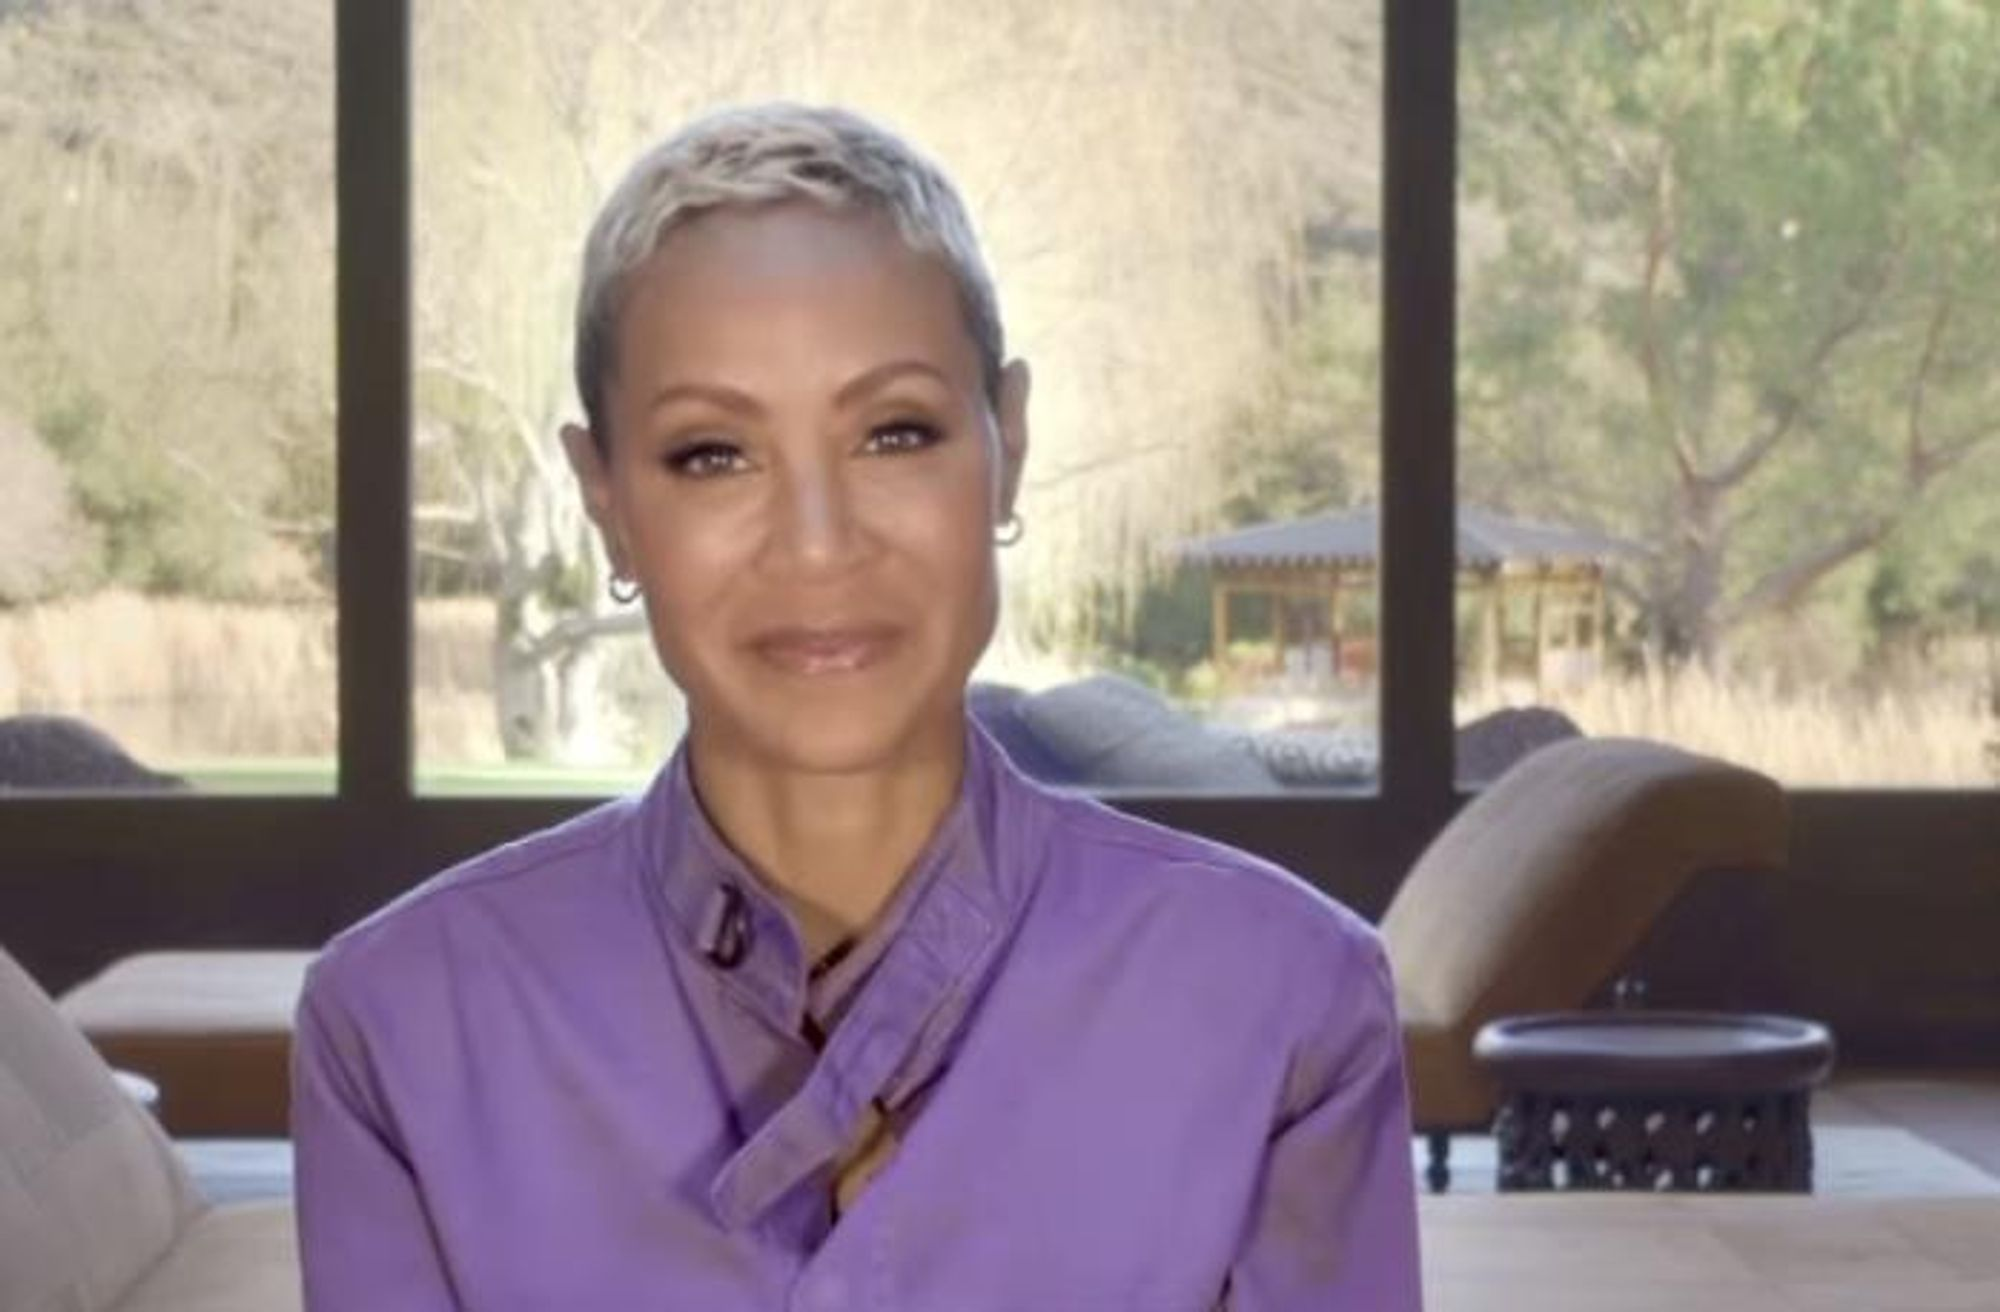 Jada Pinkett Smith Shows Us How To Use Astrology To Tap Into Our Highest Selves